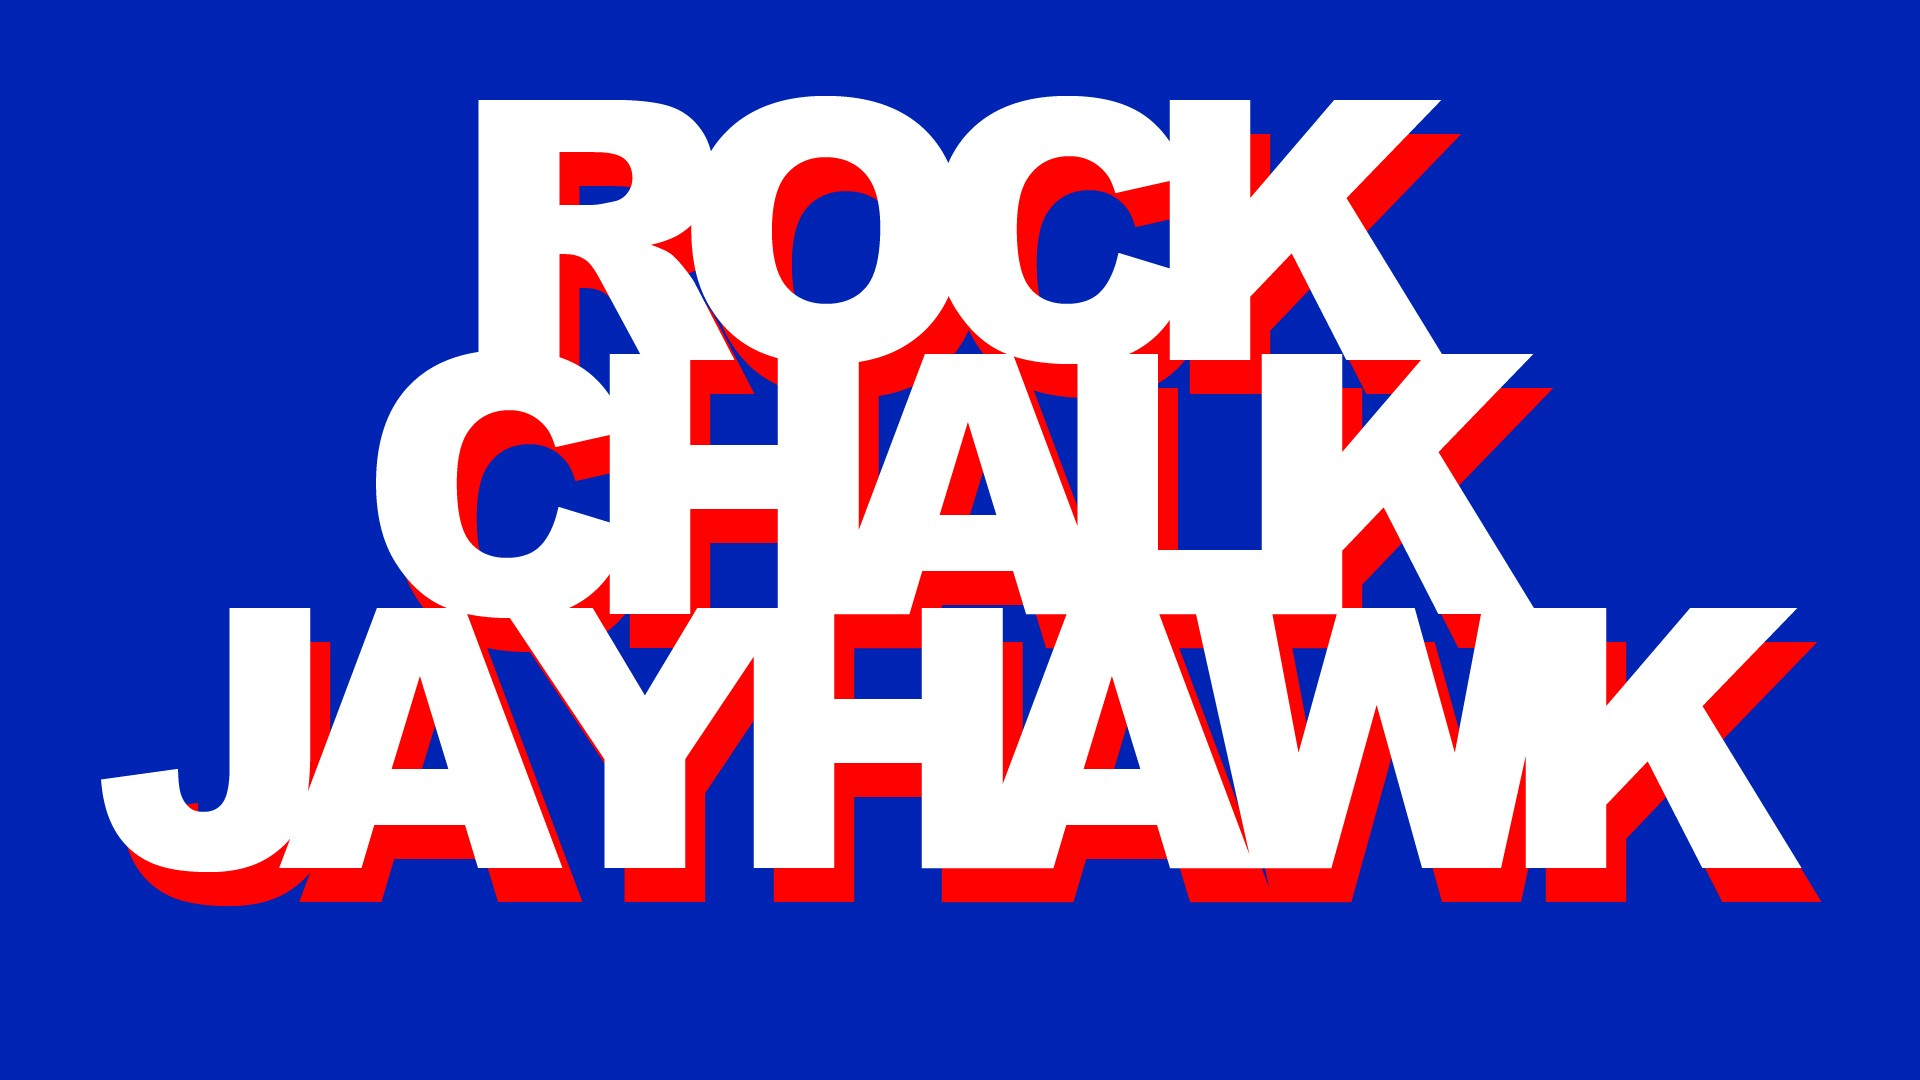 Rock Chalk Jayhawk [1920x1080] Wallpaper Wallpapers Pictures 1920x1080